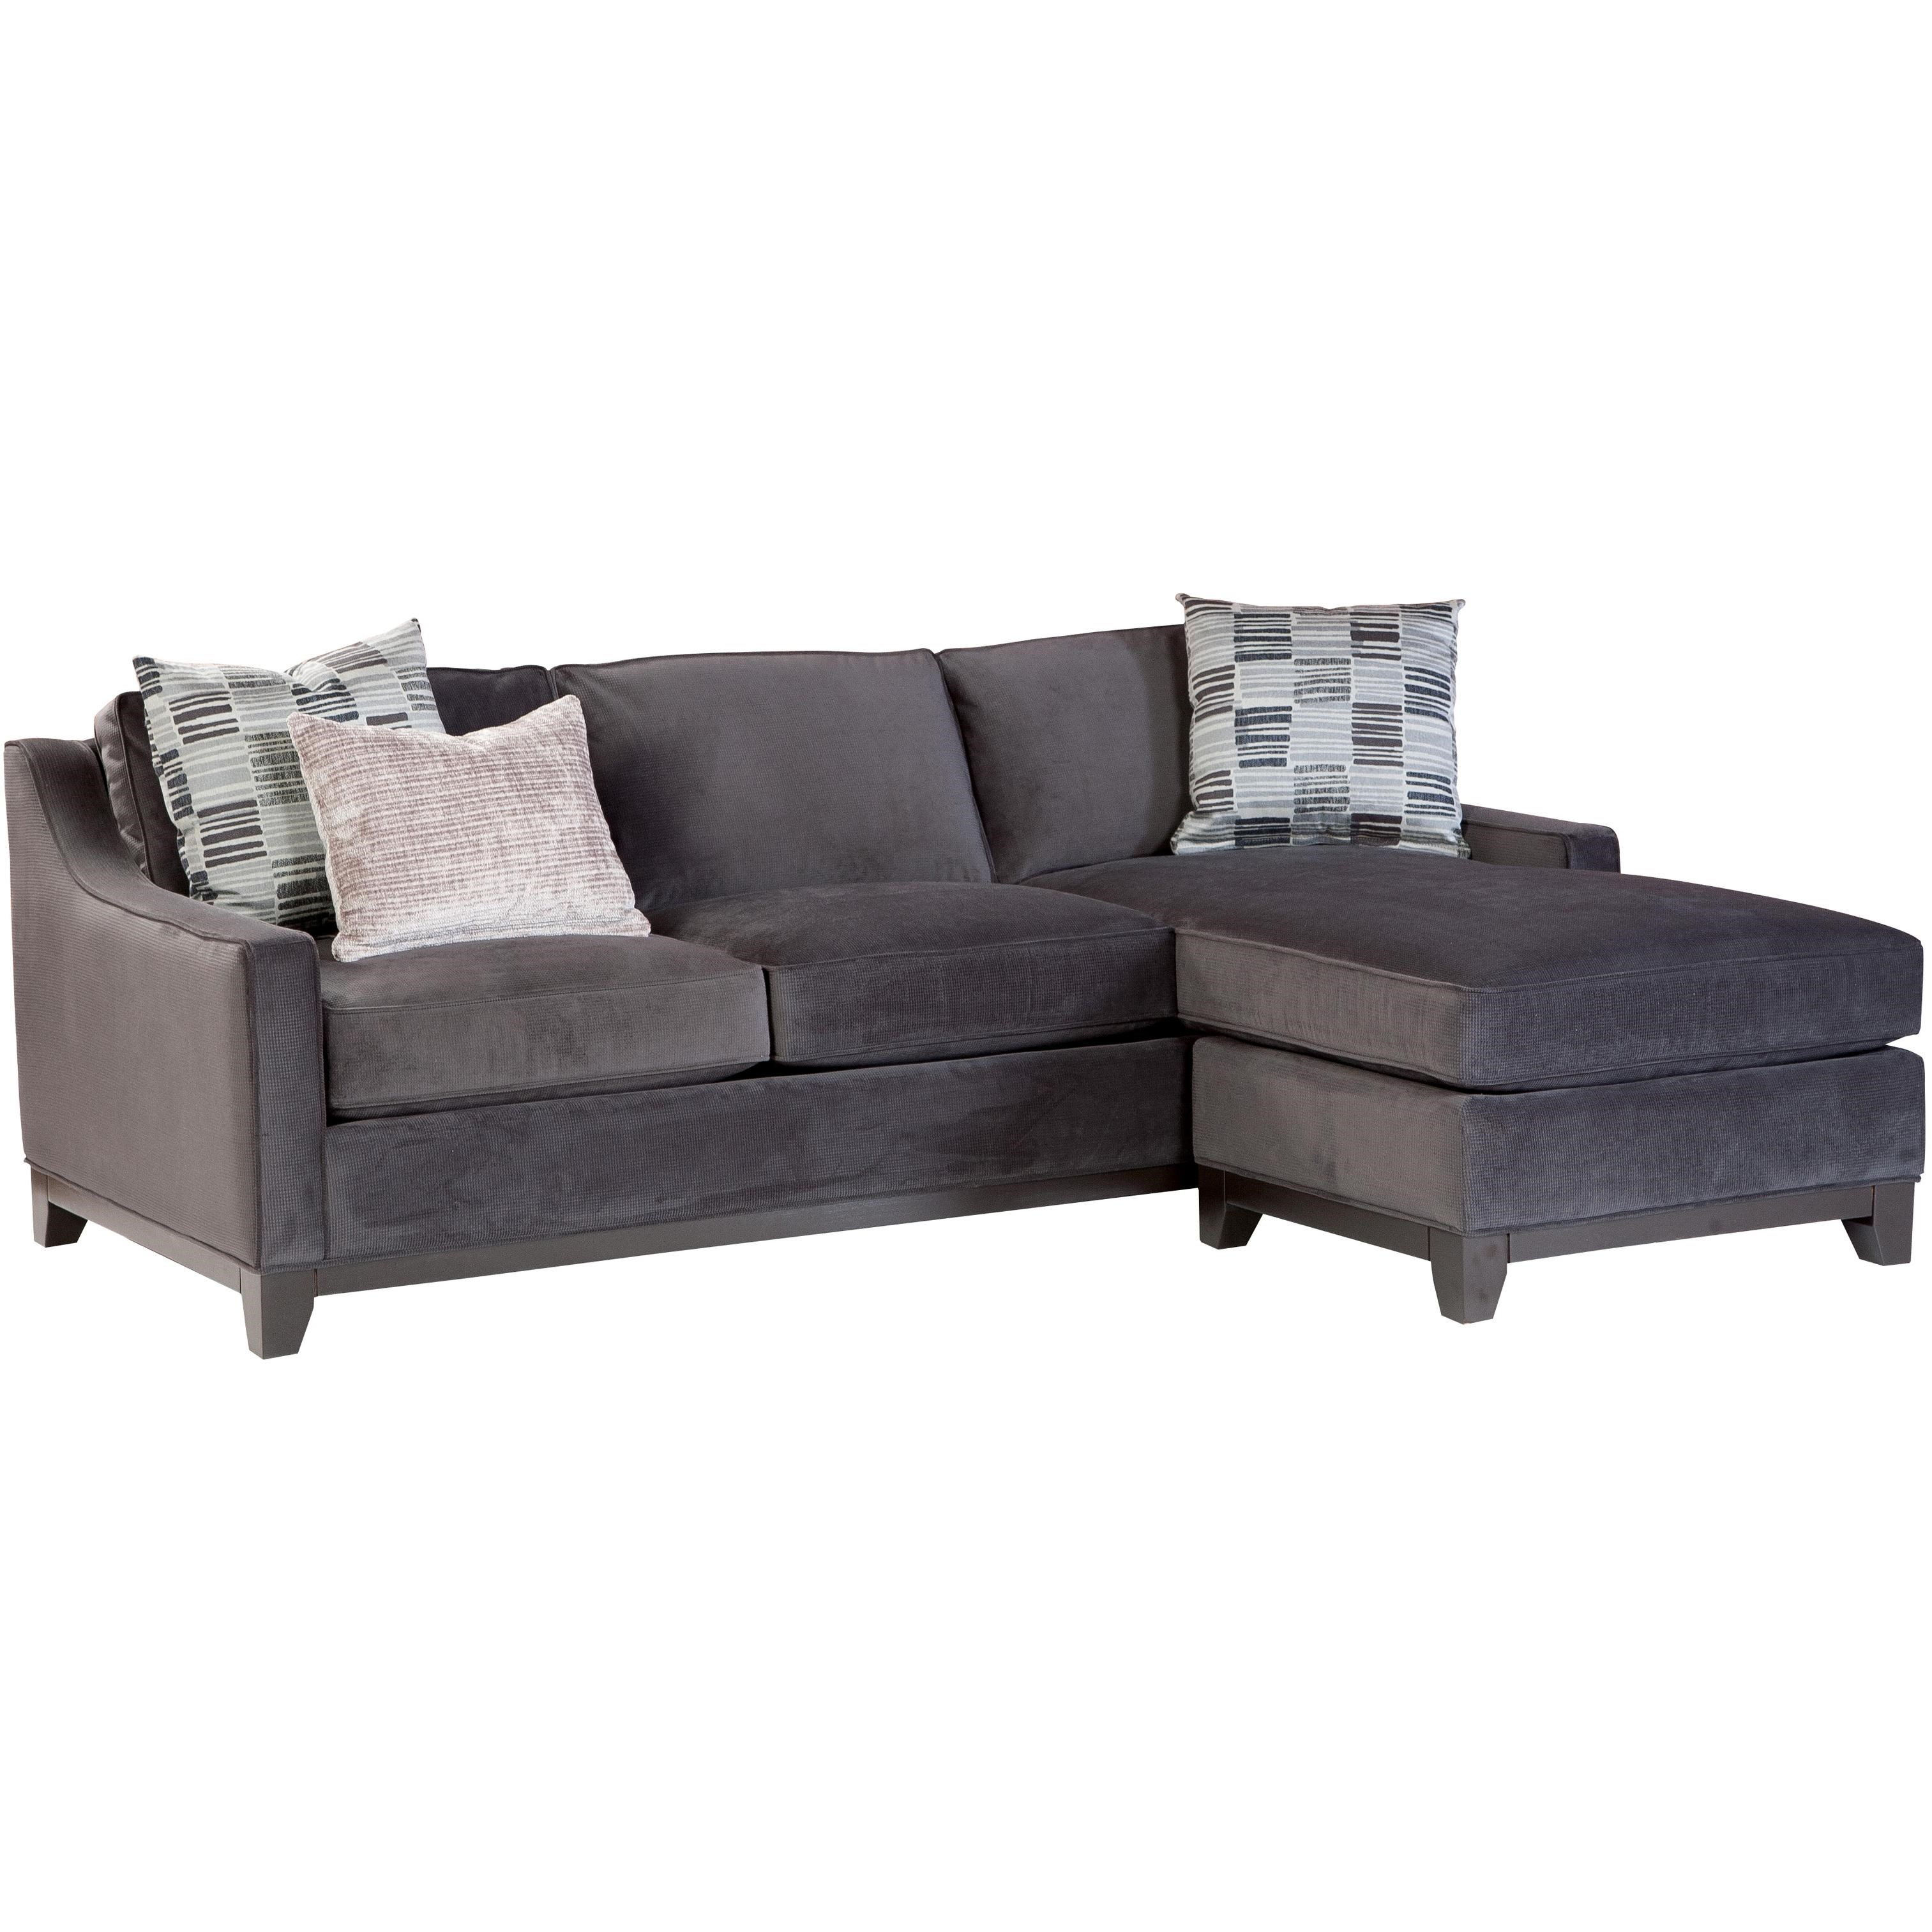 Jonathan Louis JanetContemporary Sofa With Chaise